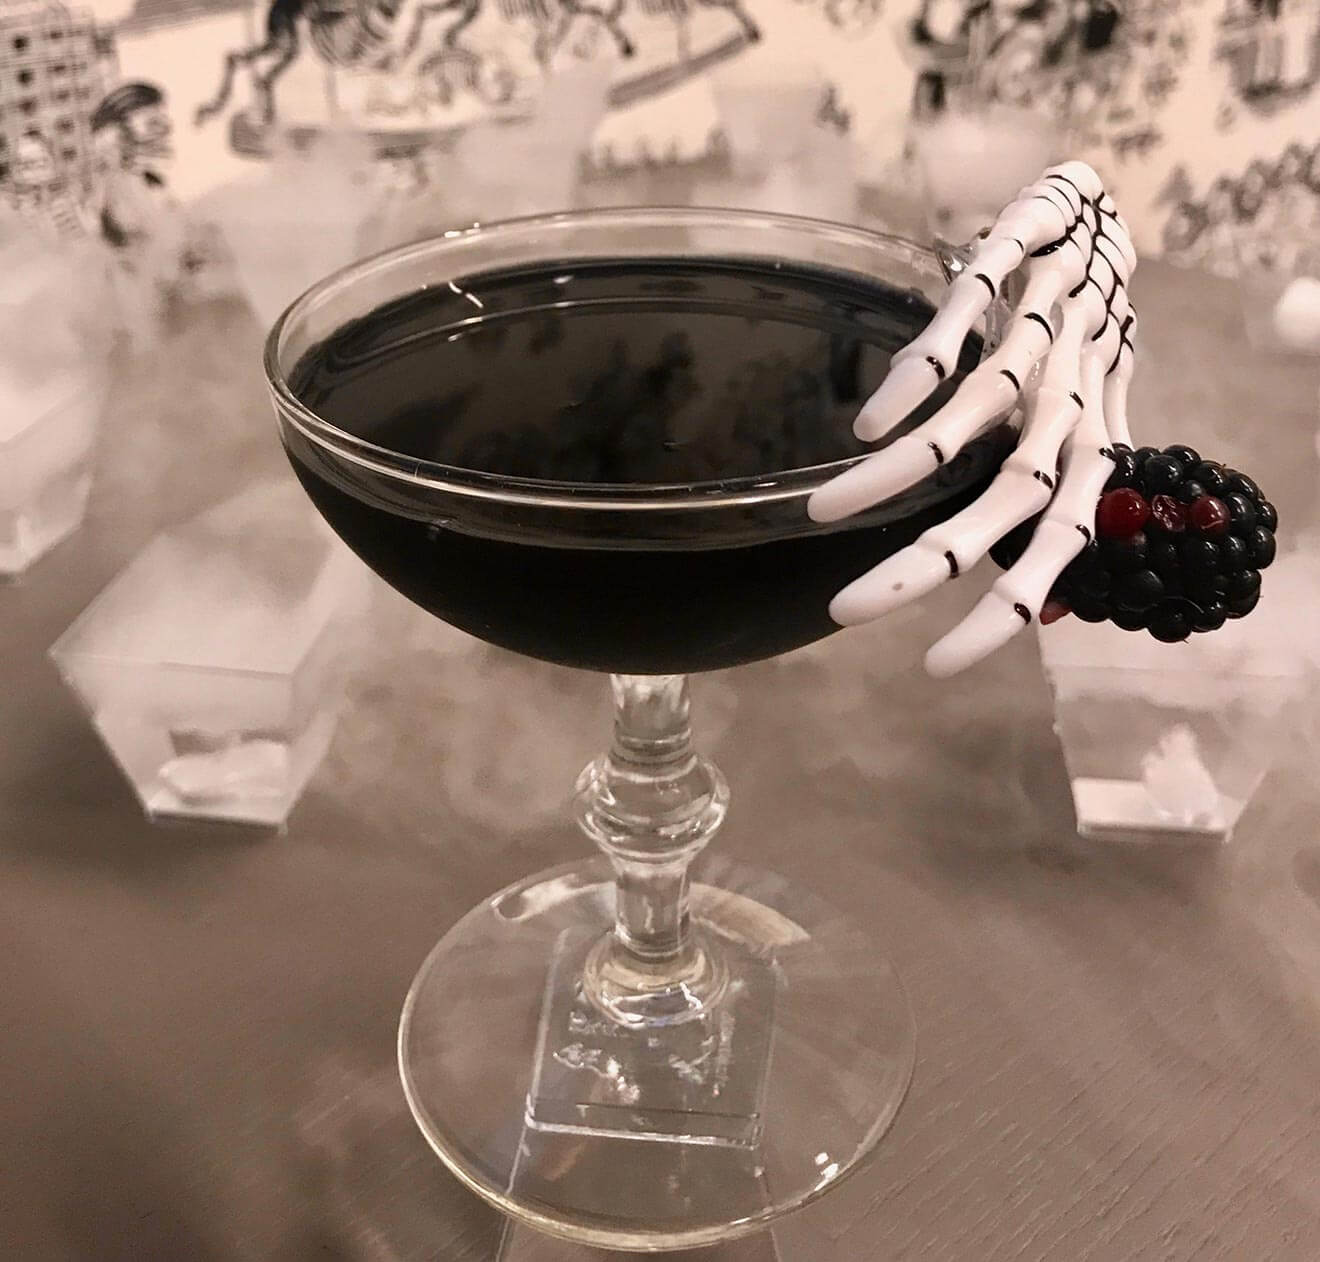 Black Magic Woman cocktail